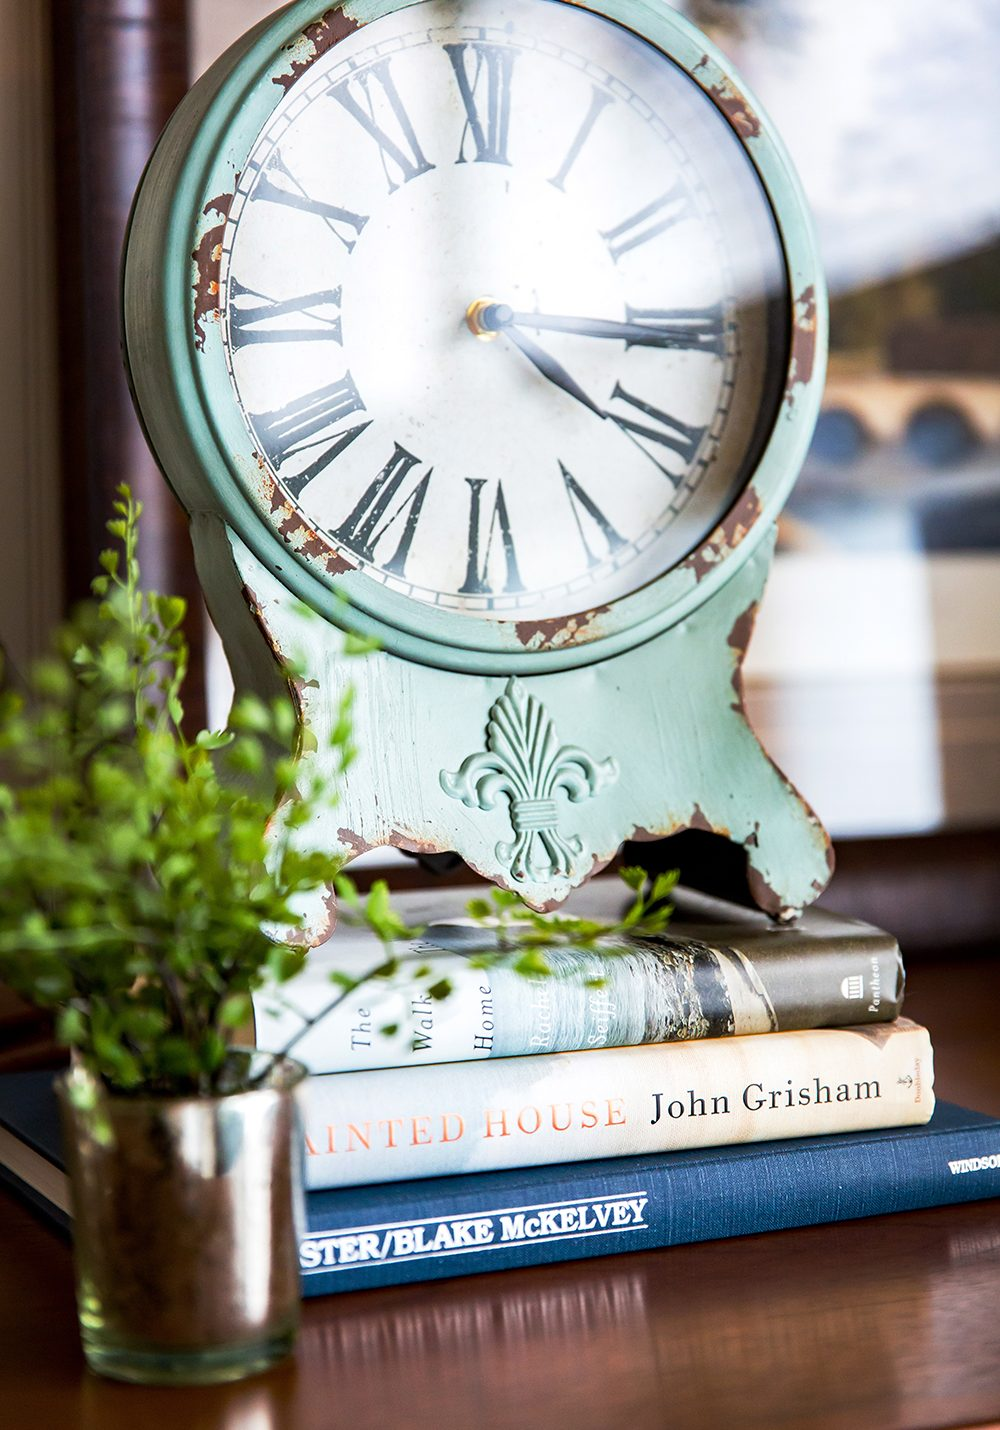 Vintage Clock with Books